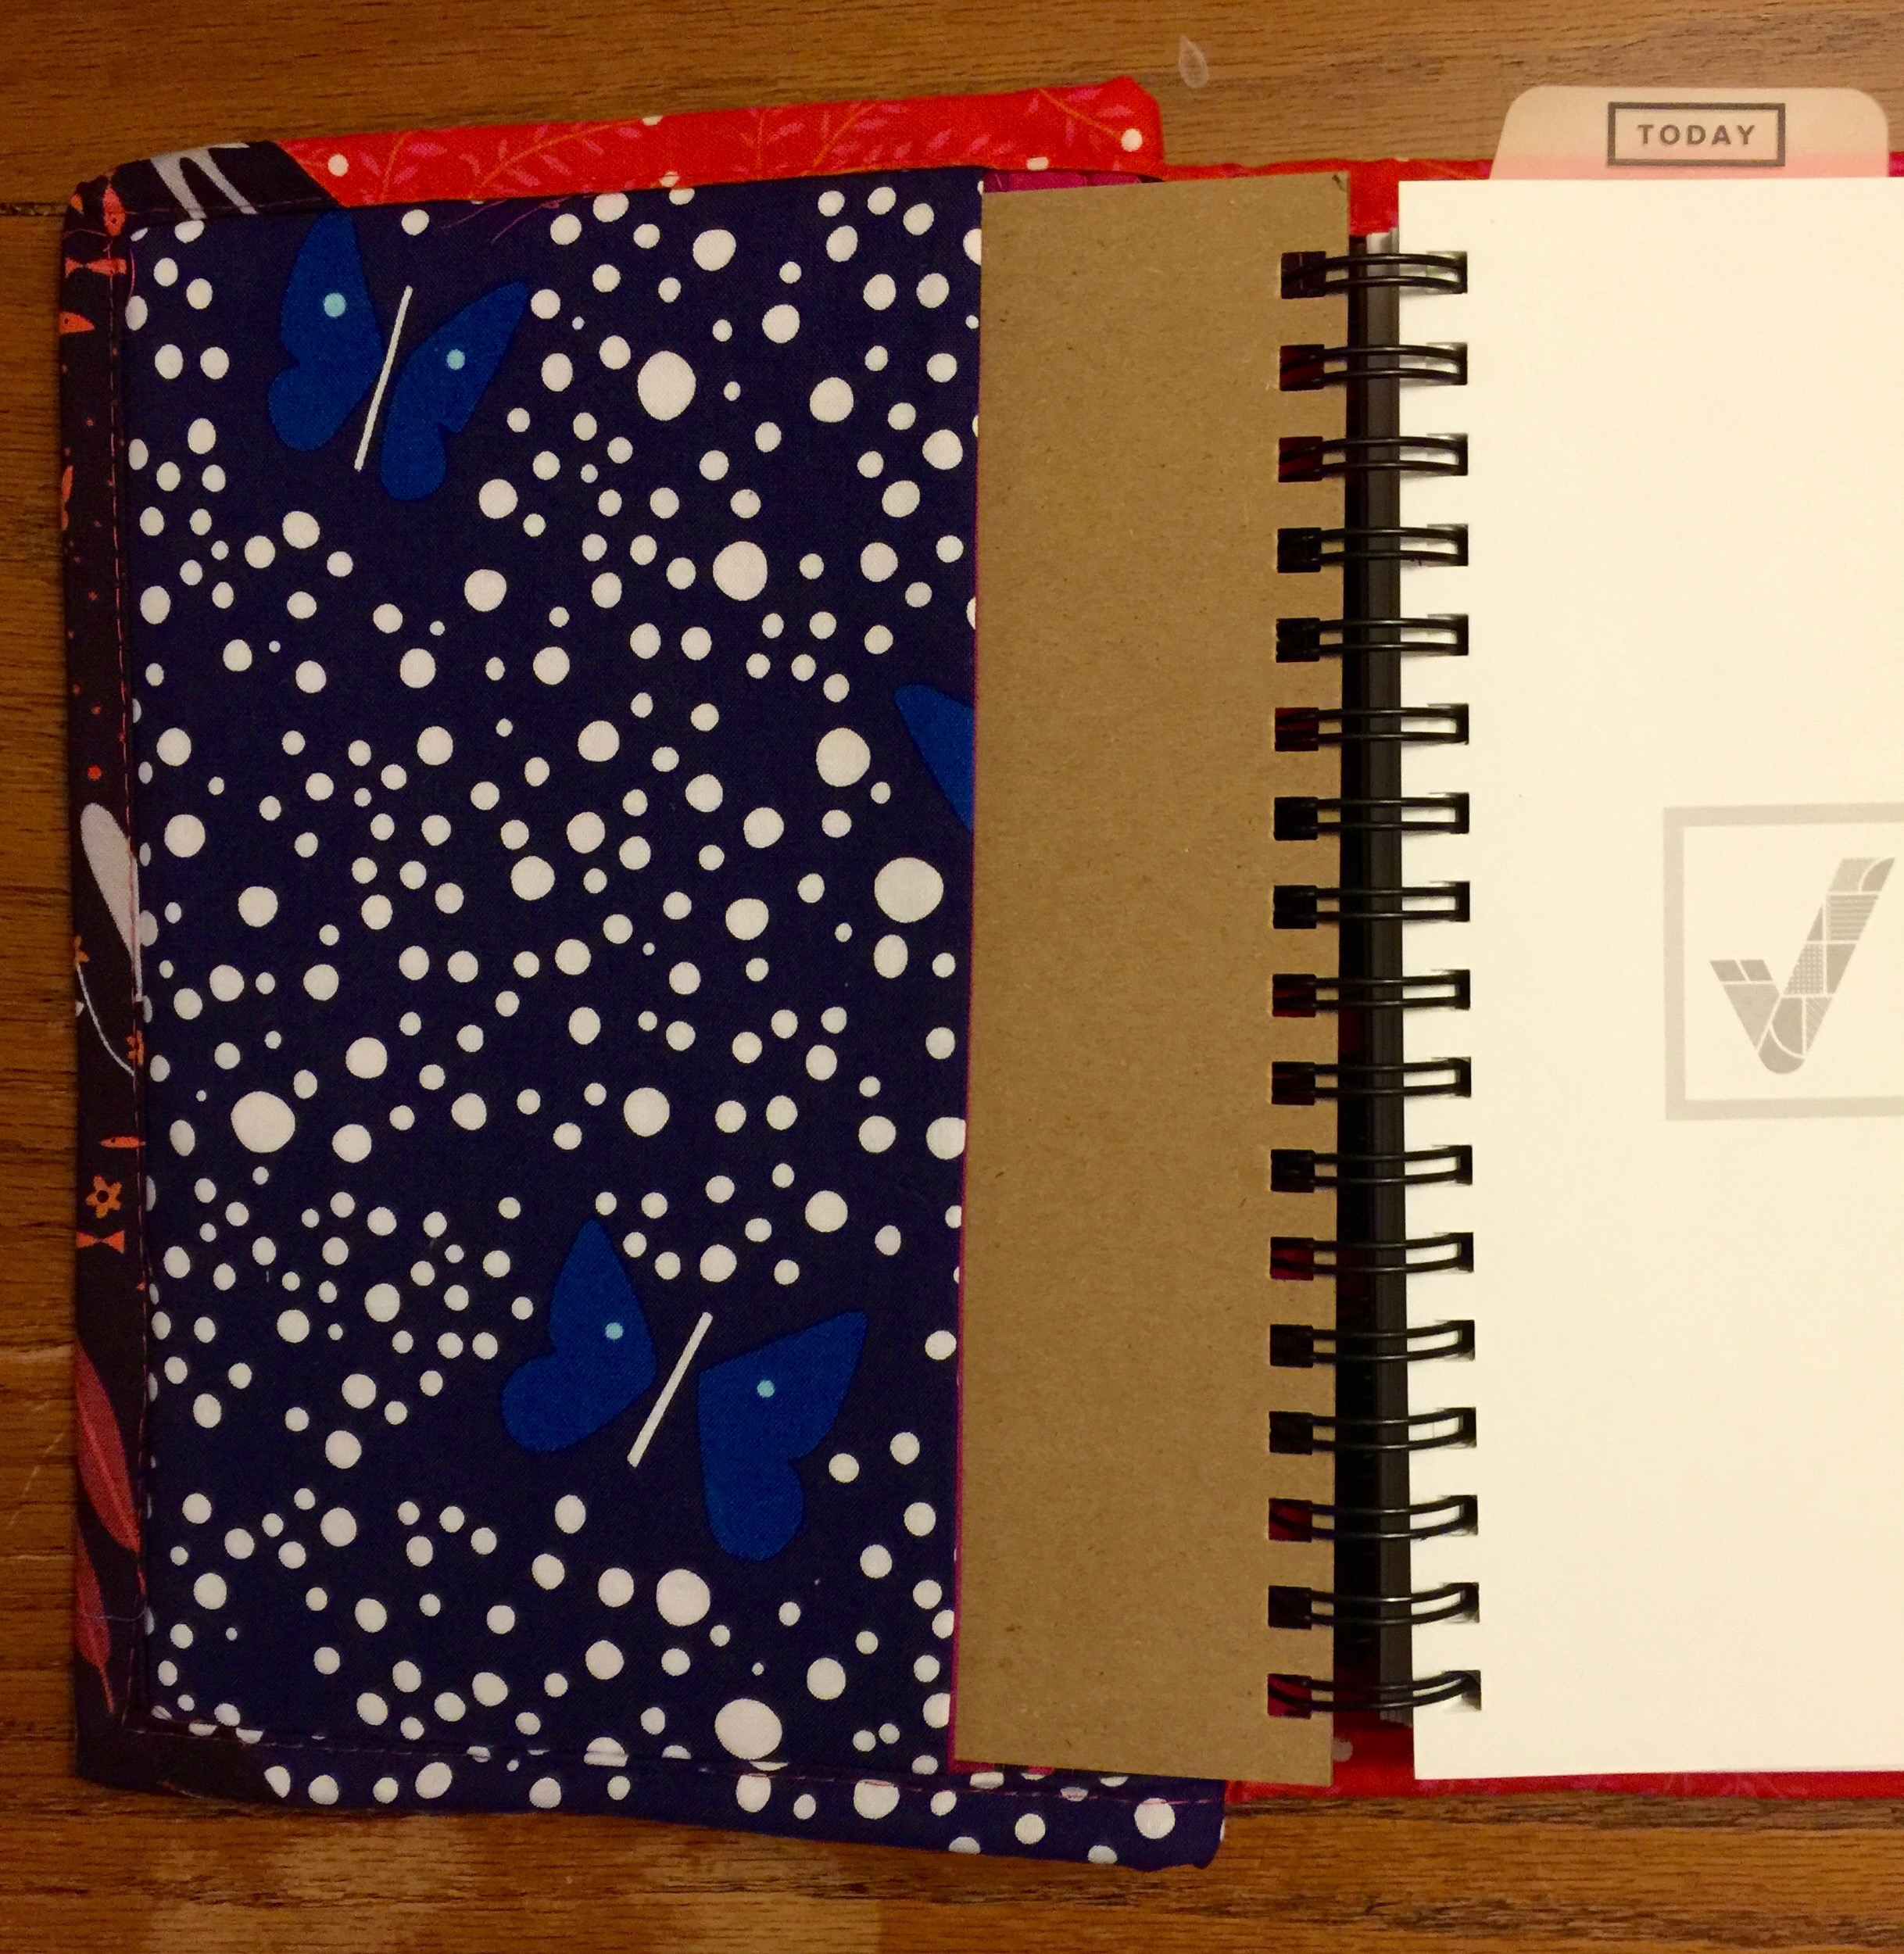 Quilted Planner Cover for the 2016 Get To Work Book + suggestions on how to adapt the size to fit any planner